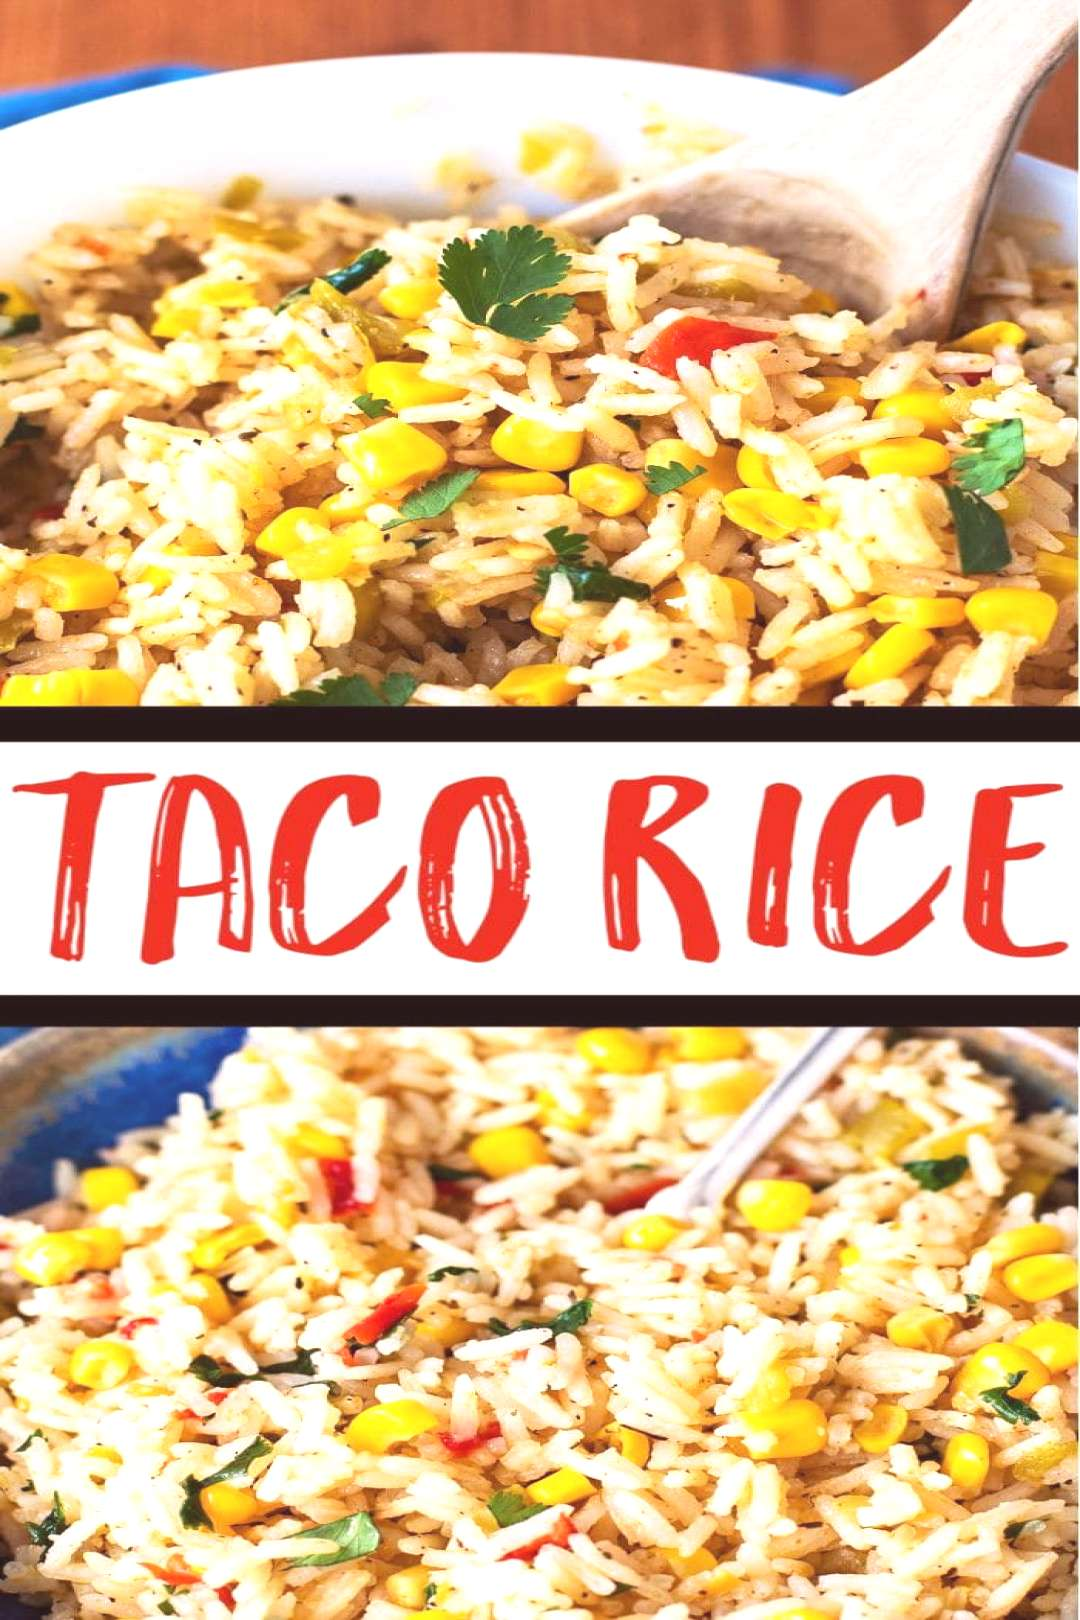 Taco Rice - This flavorful rice is a wonderful side dish, taco filling, or burrito filling. Made wi